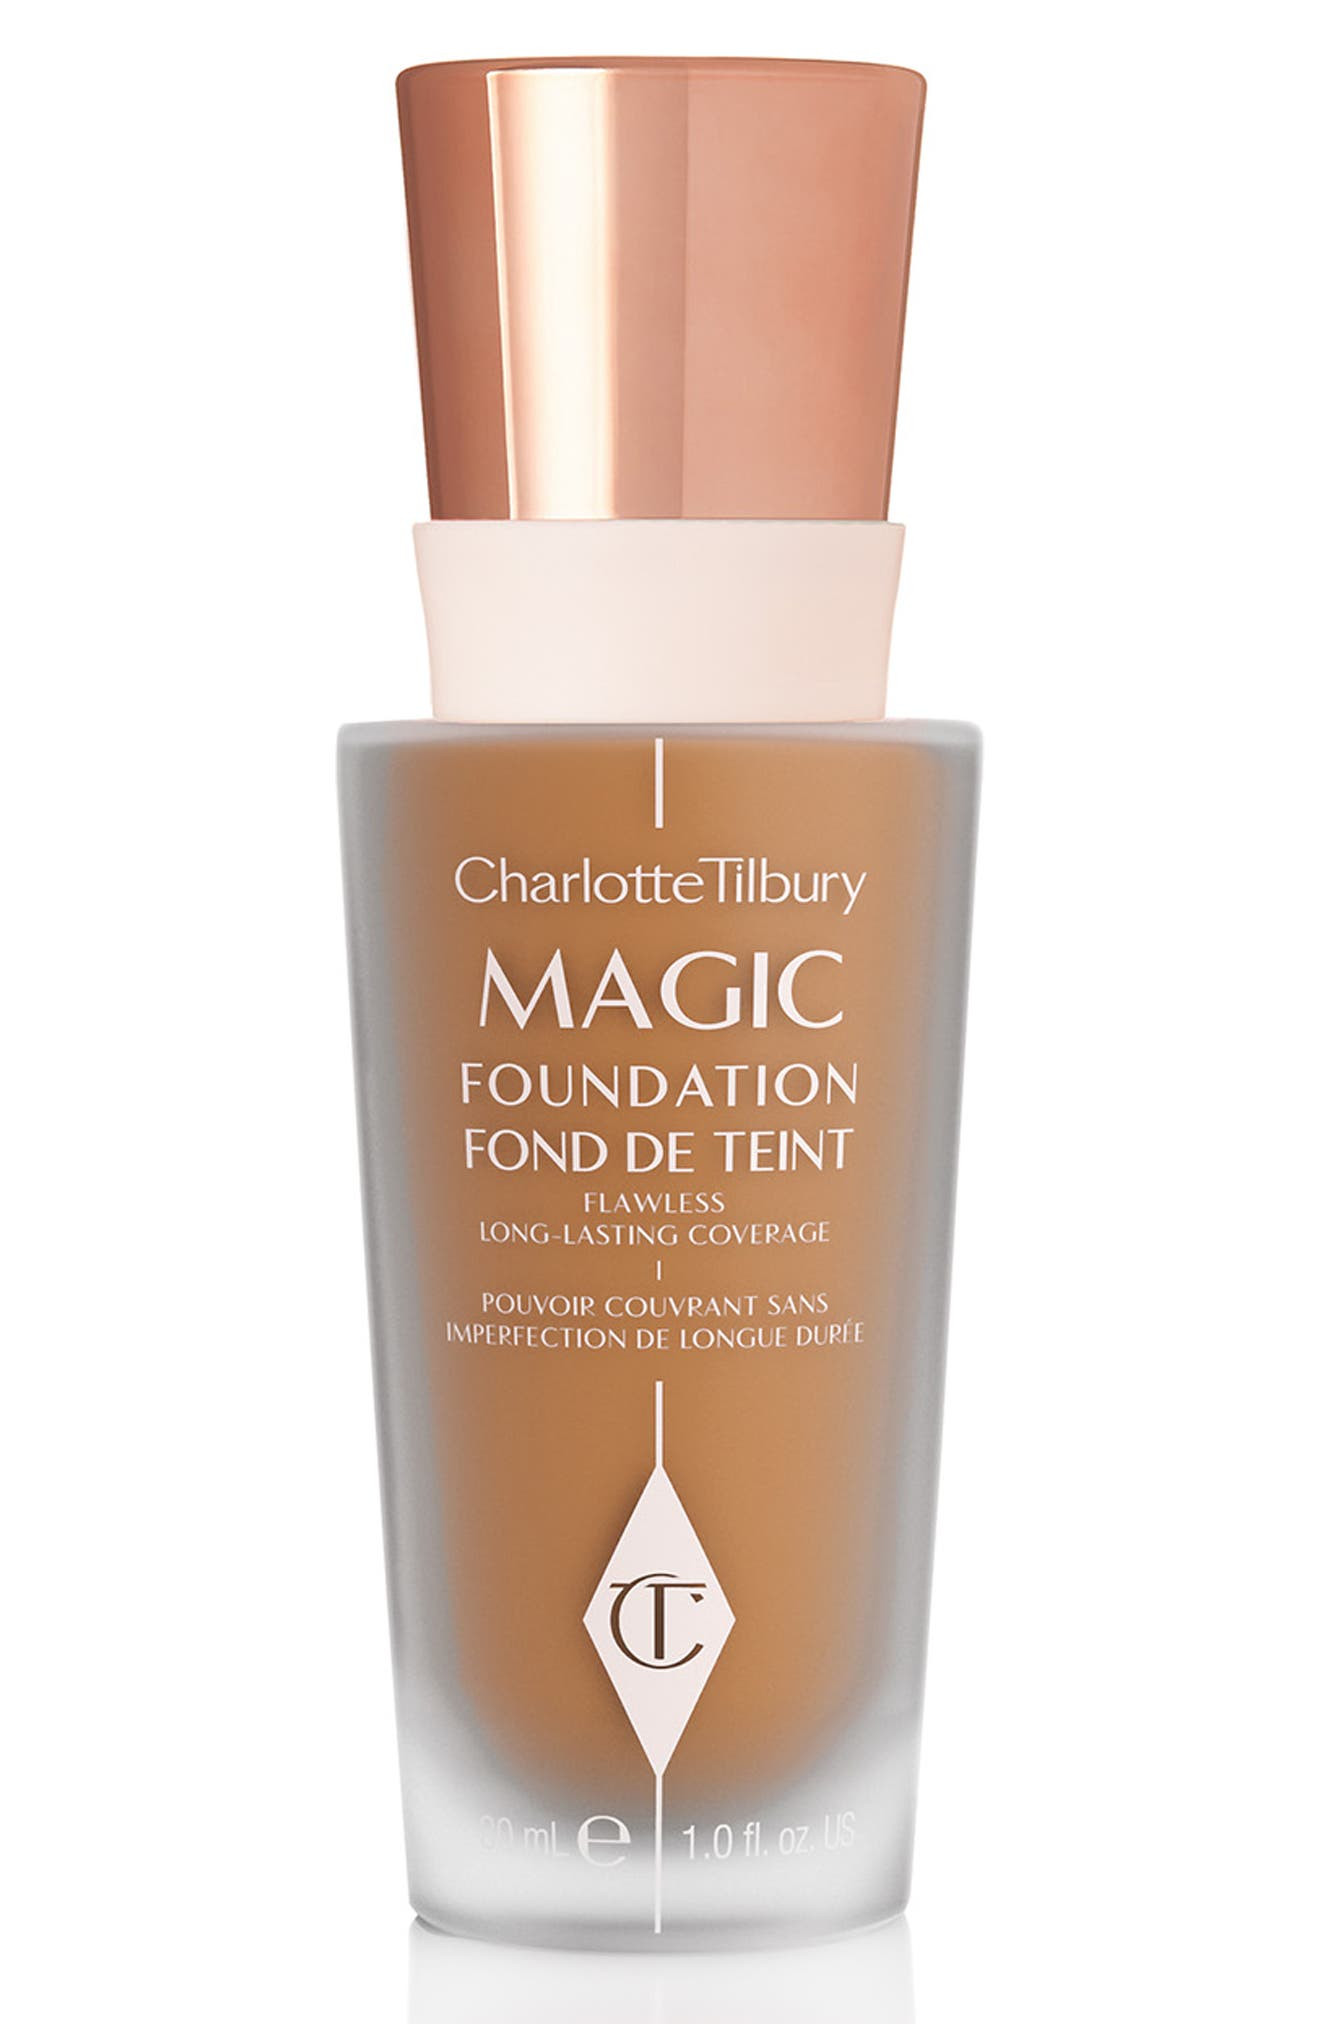 CHARLOTTE TILBURY MAGIC FOUNDATION BROAD SPECTRUM SPF 15 - 9 DARK